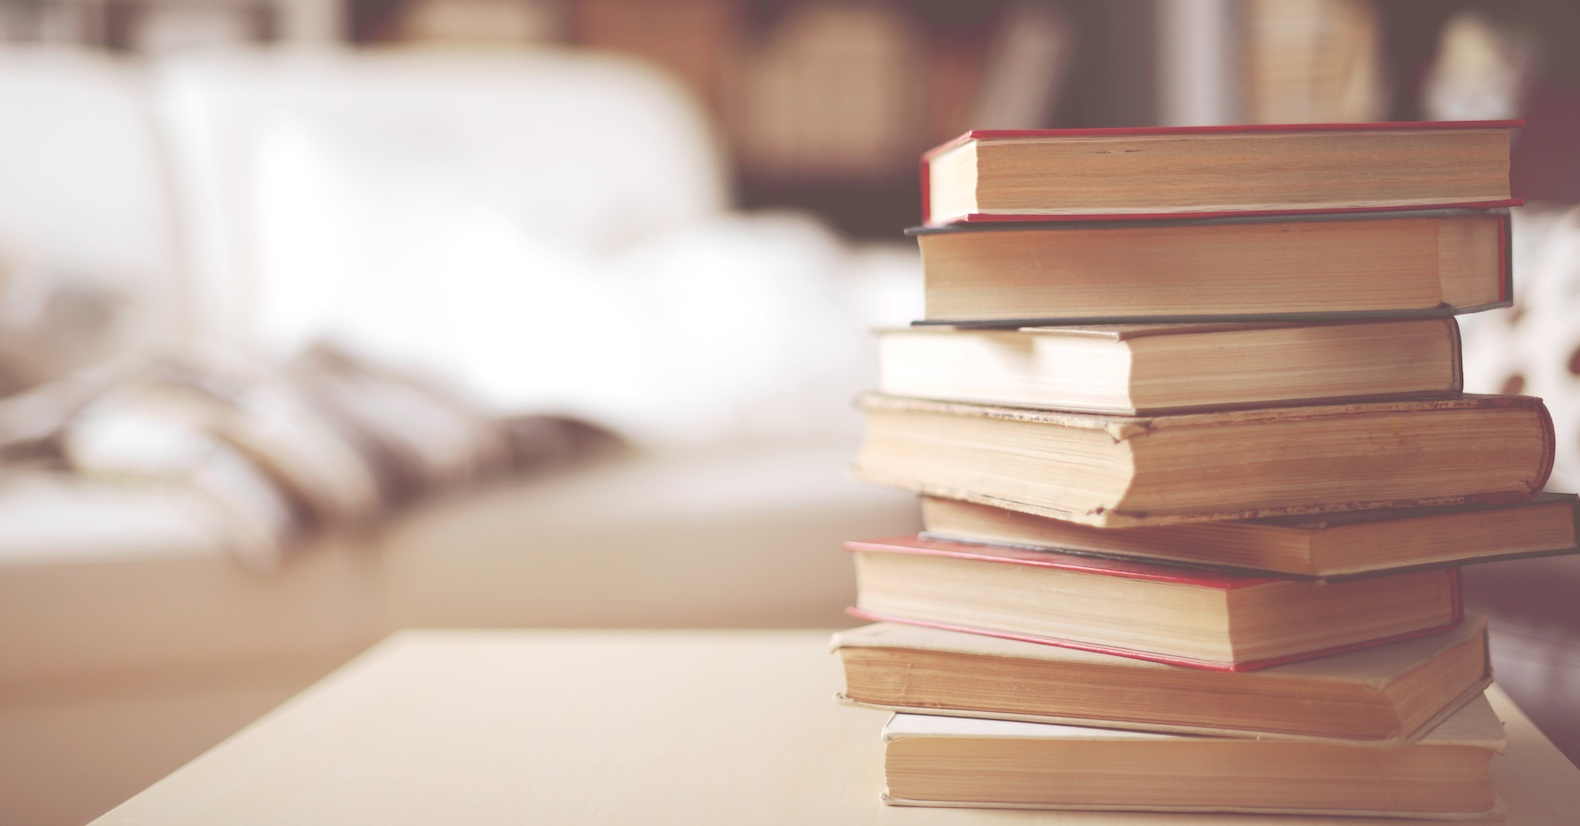 stack of old books in home interior